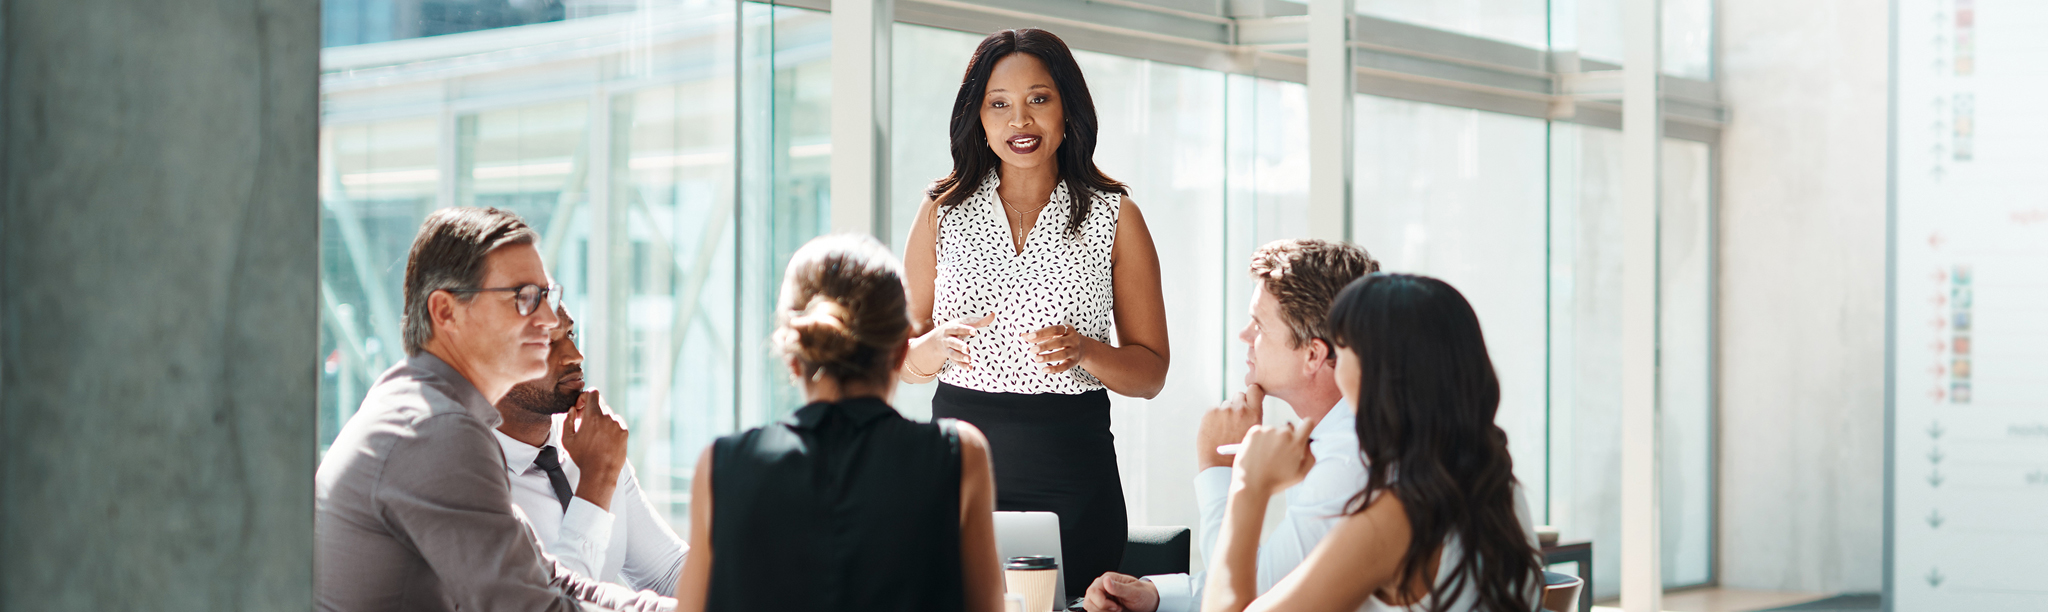 Woman talking to diversity in communications group